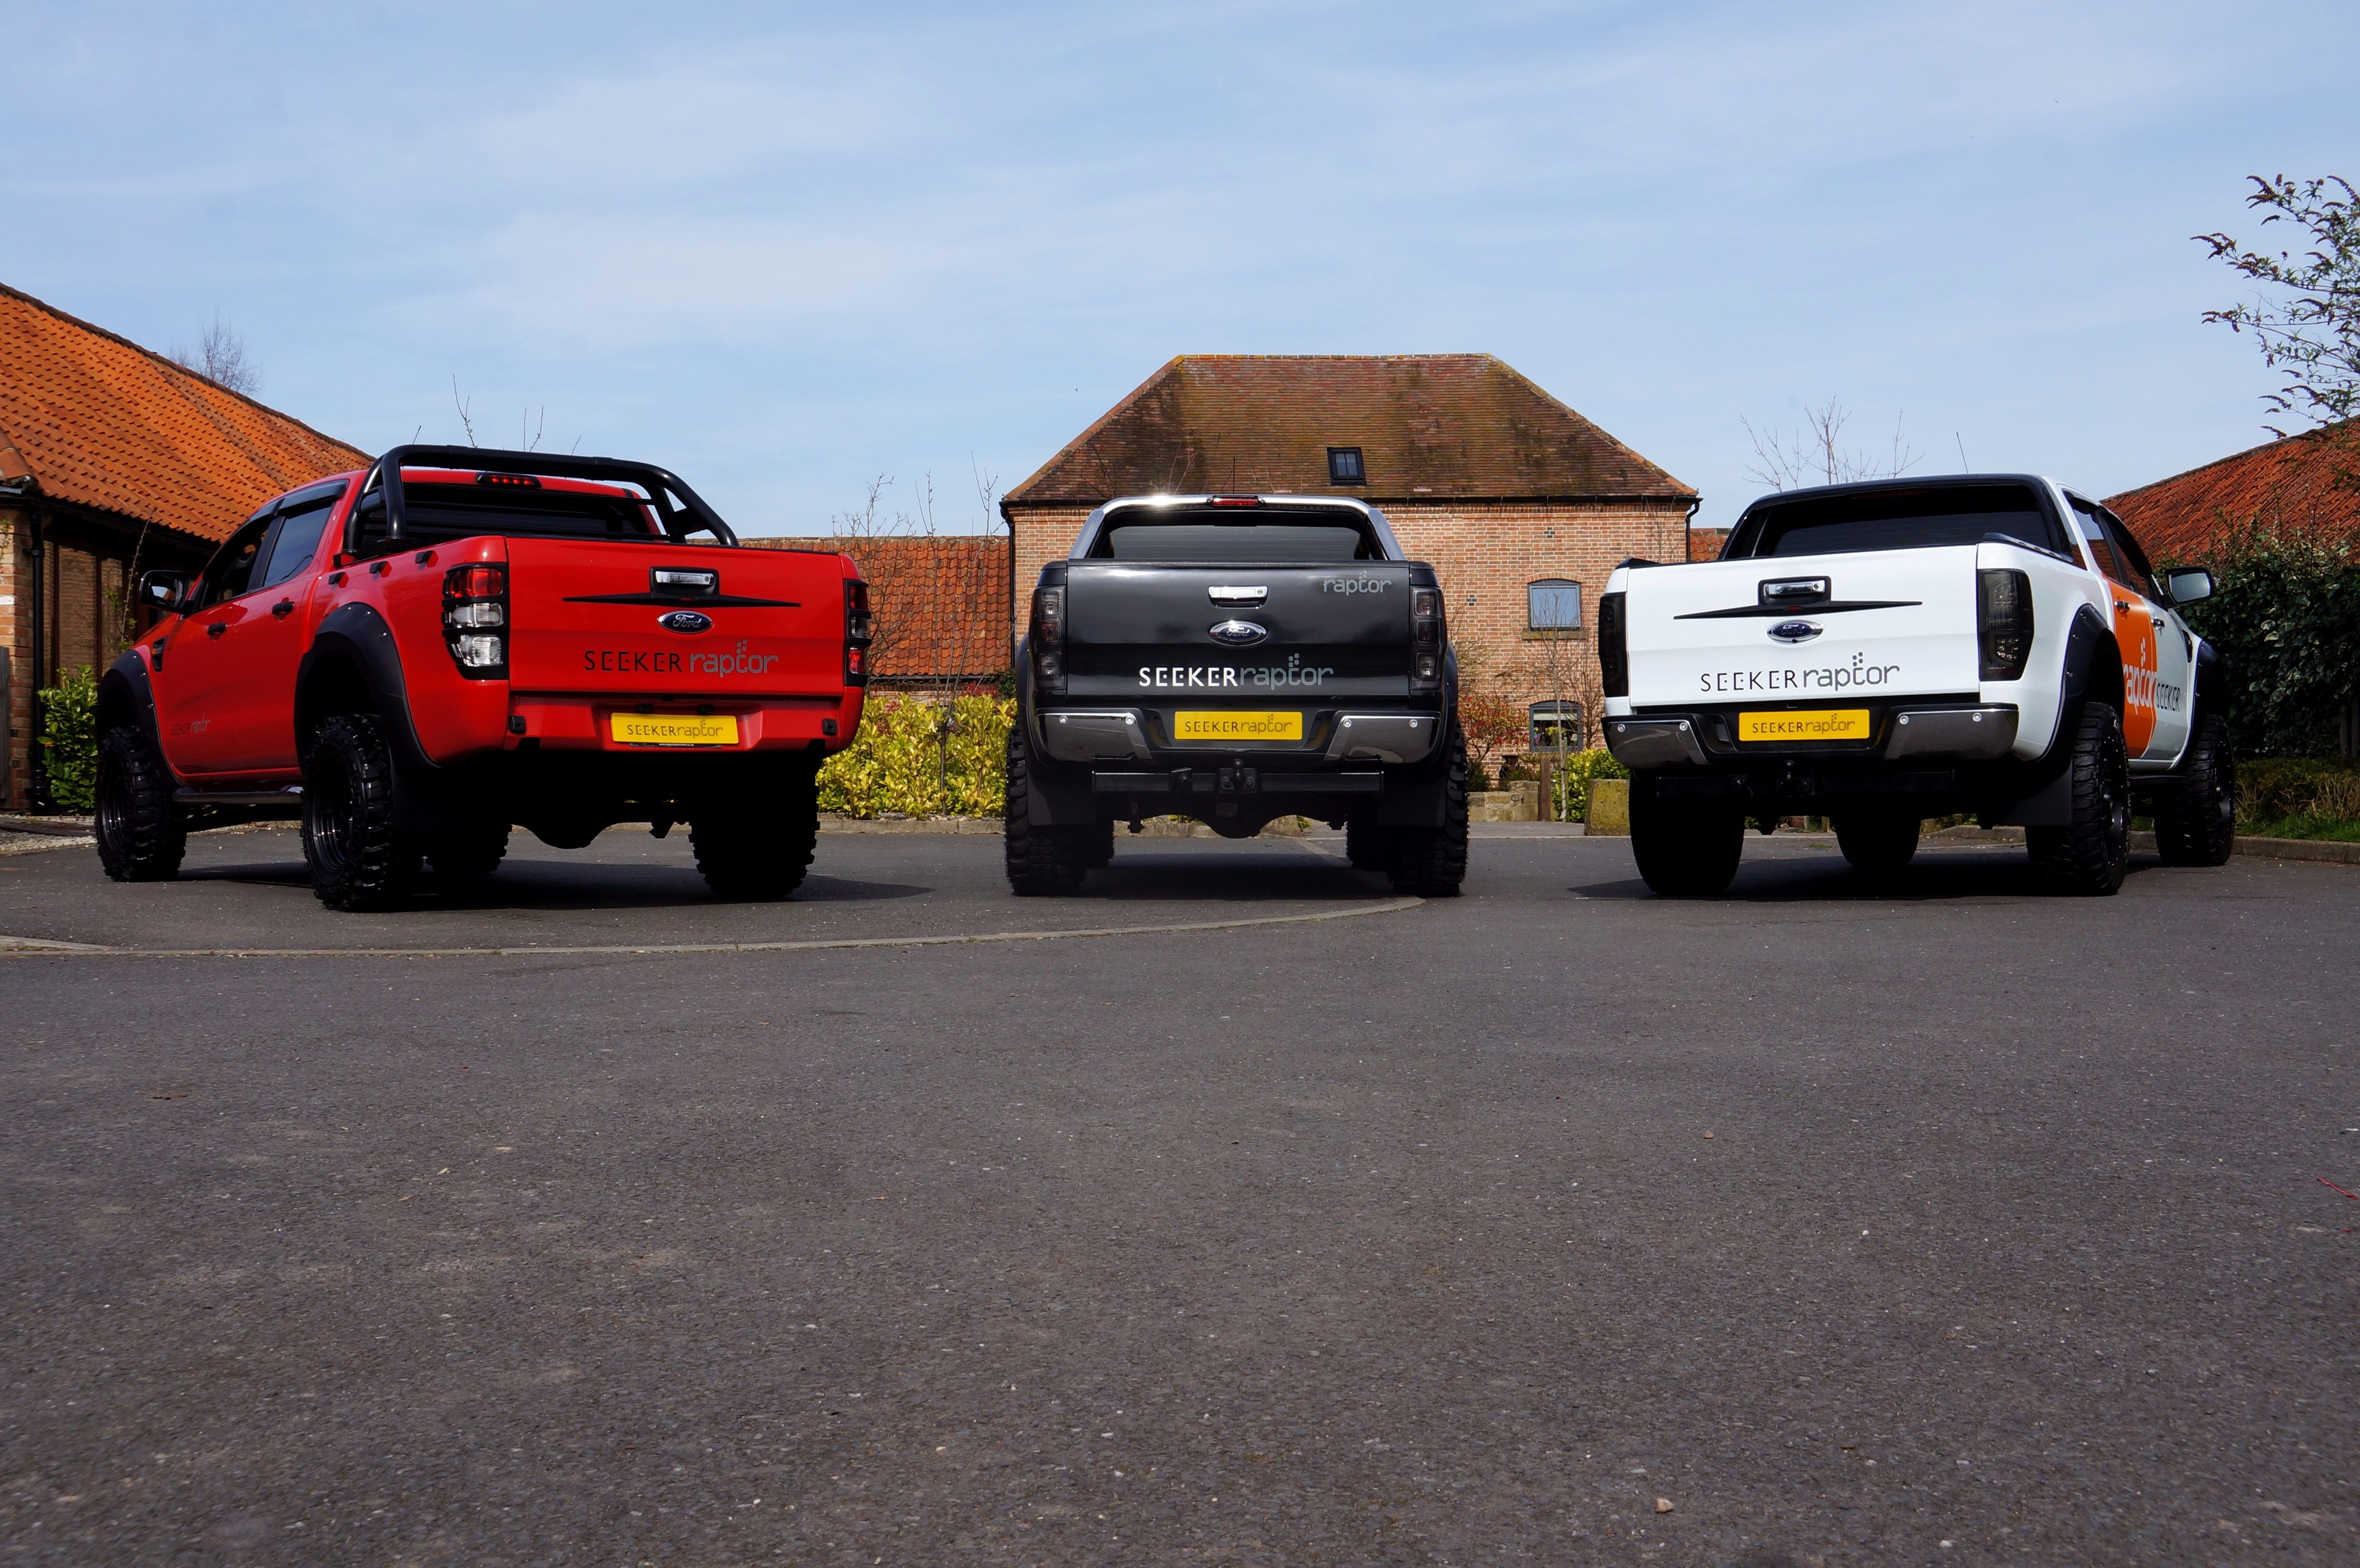 Ford Ranger 2.2 SEEKER Raptor Editions from Motorseeker UK.  From £15,995 plus VAT.